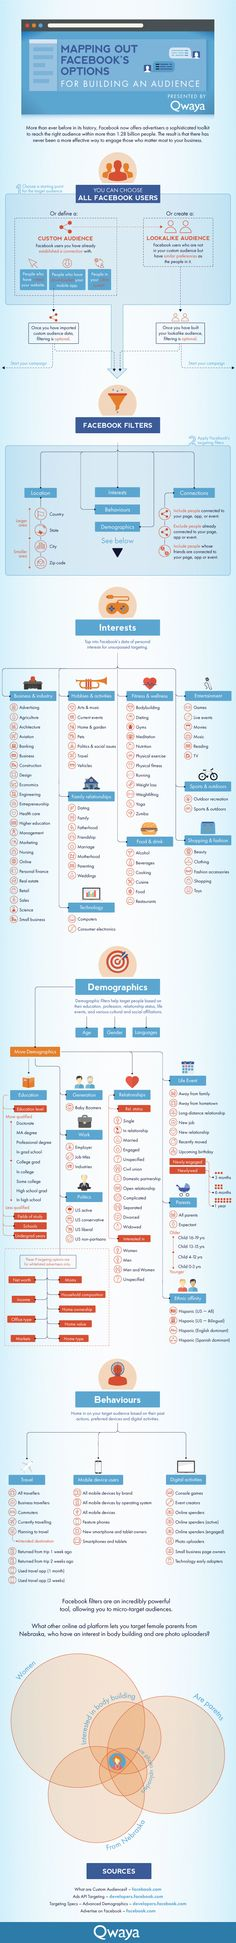 INFOGRAPHIC: Guide To Facebook's Ad Targeting - AllFacebook